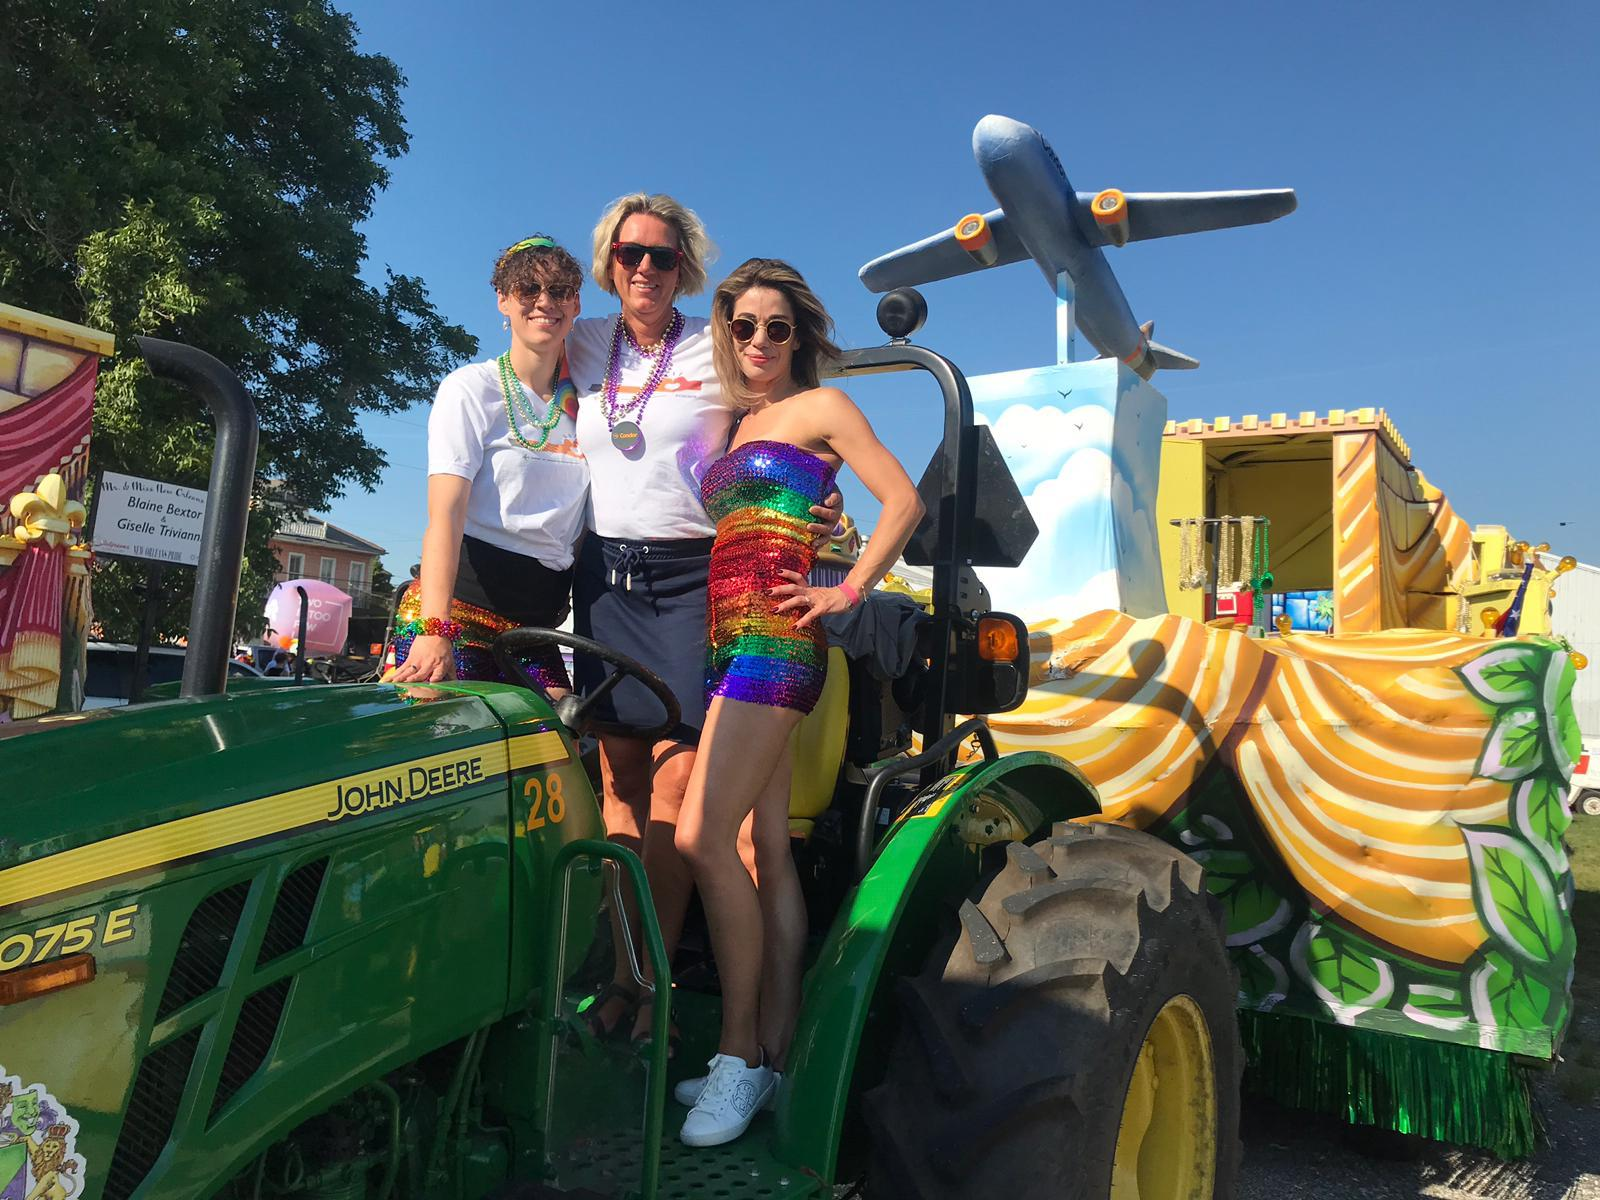 Condor pilots gathering at the helm of the tractor pulling a pride parade float